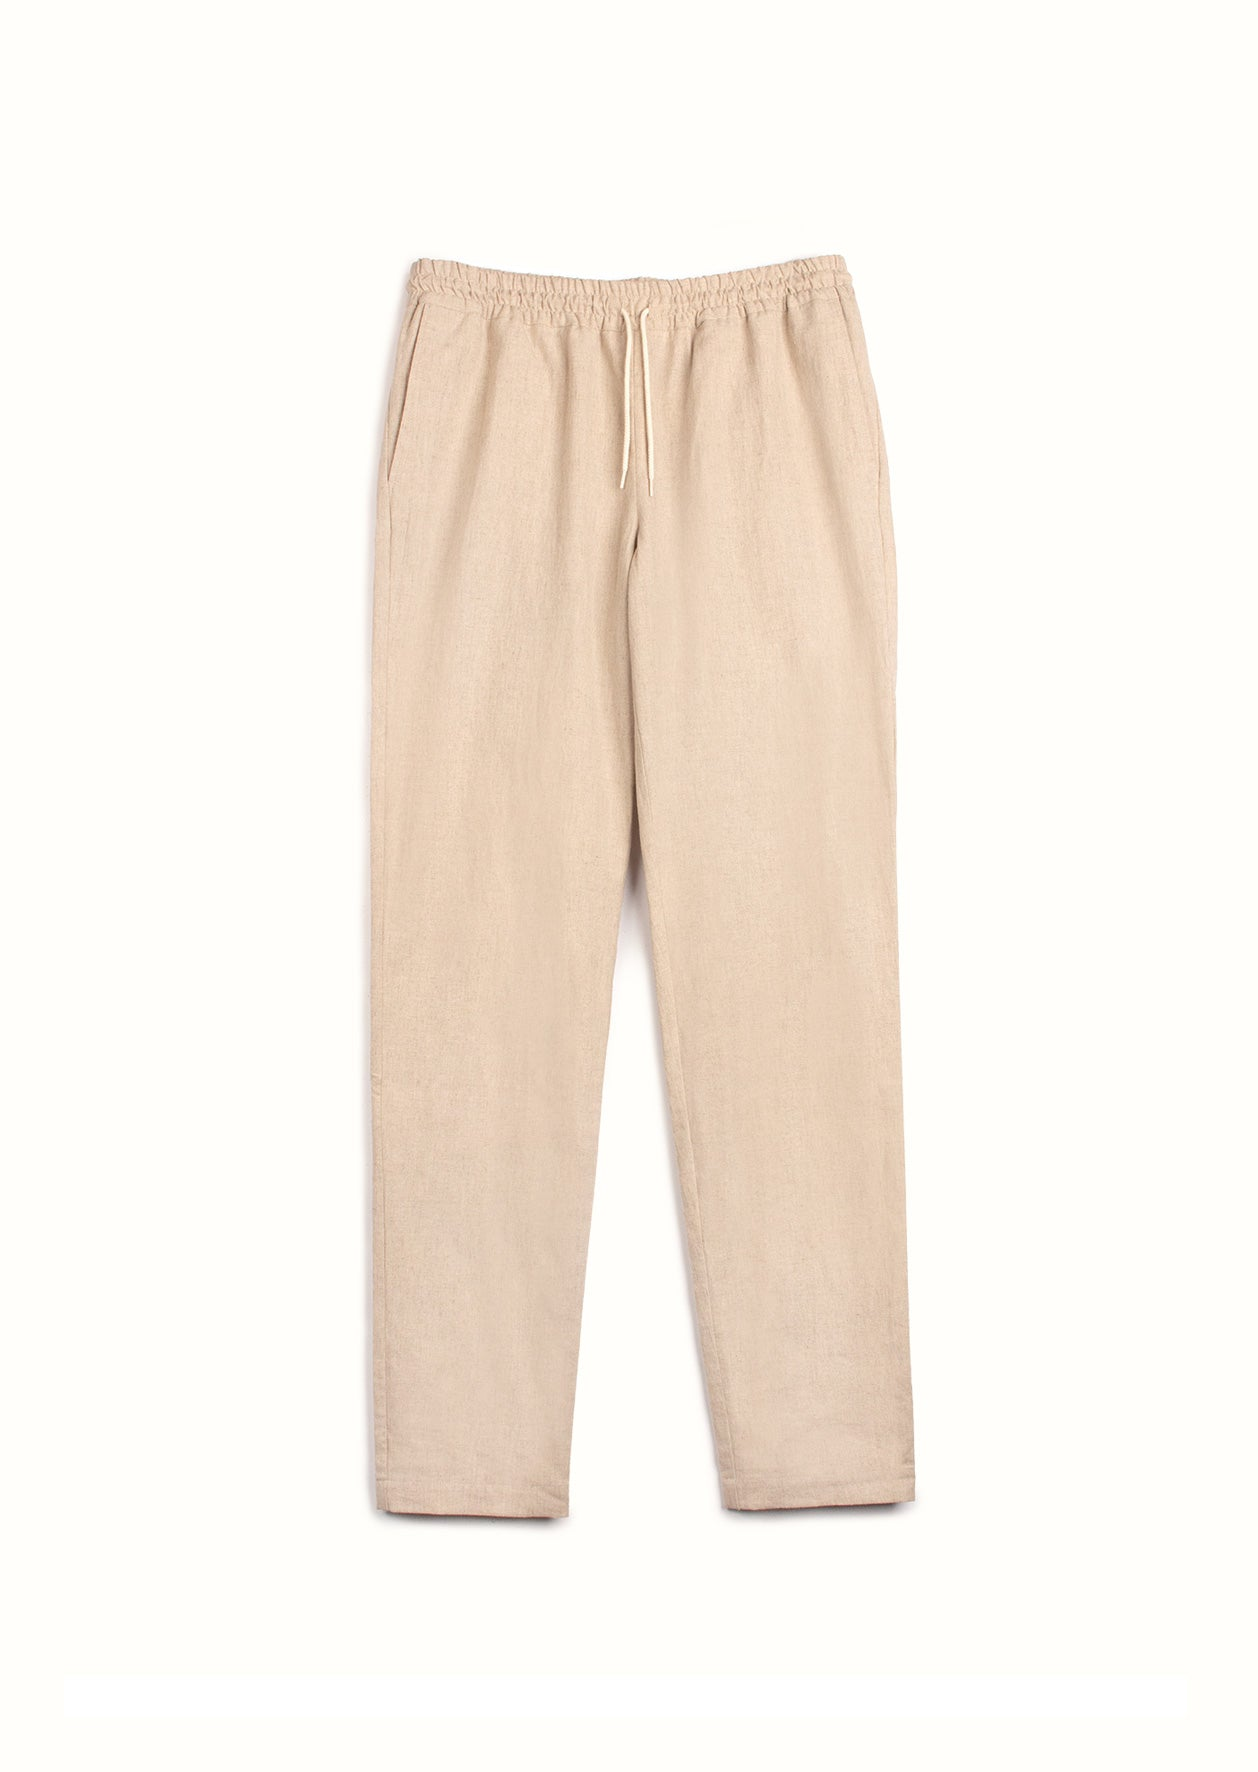 De Bonne Facture - Easy trousers - Japanese linen & cotton - Beige